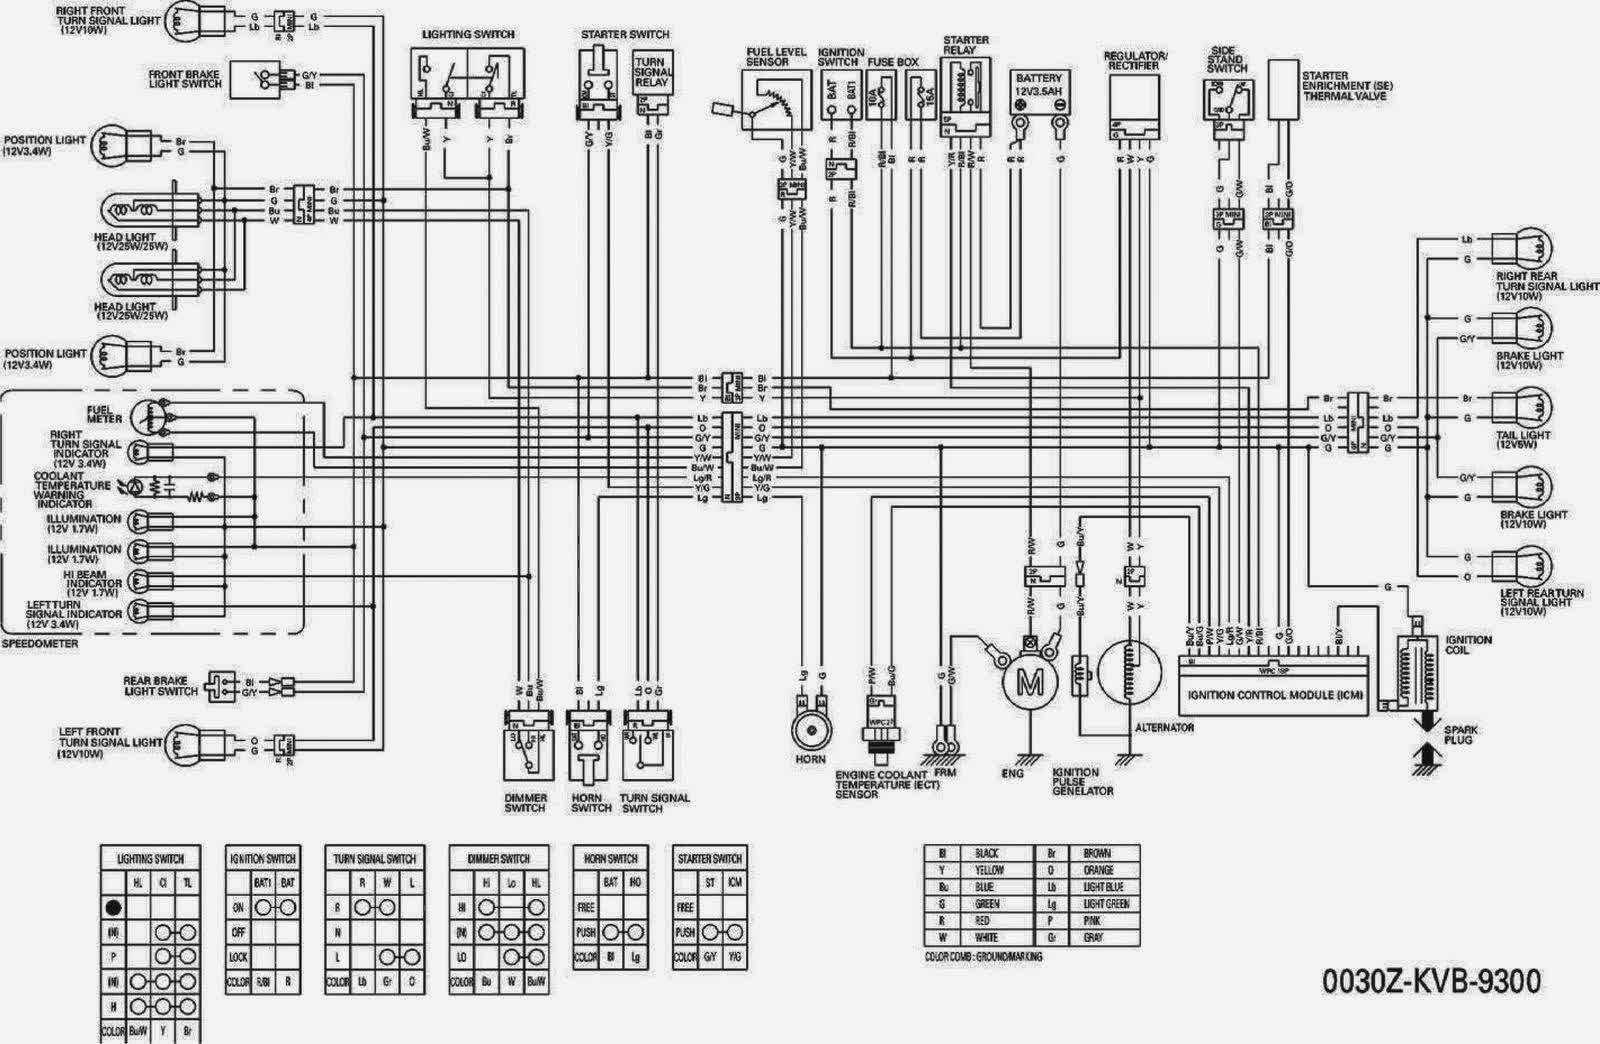 vario wiring diagram wiring diagram vario 110 wiring diagrams pw50 wiring diagram at webbmarketing.co